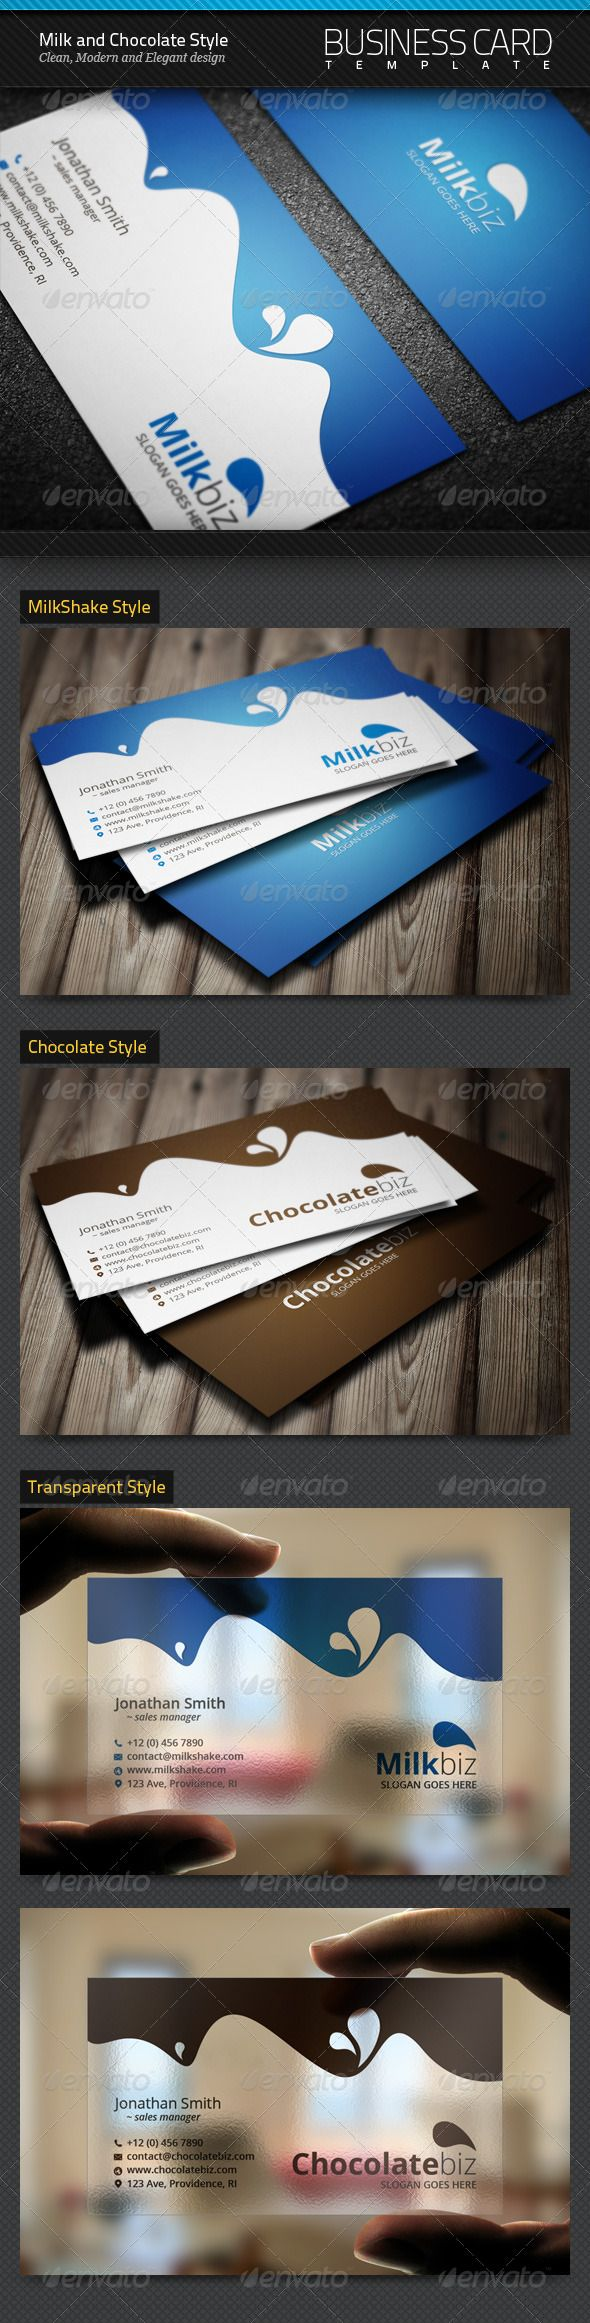 54 best Business Card Designs images on Pinterest | Corporate ...